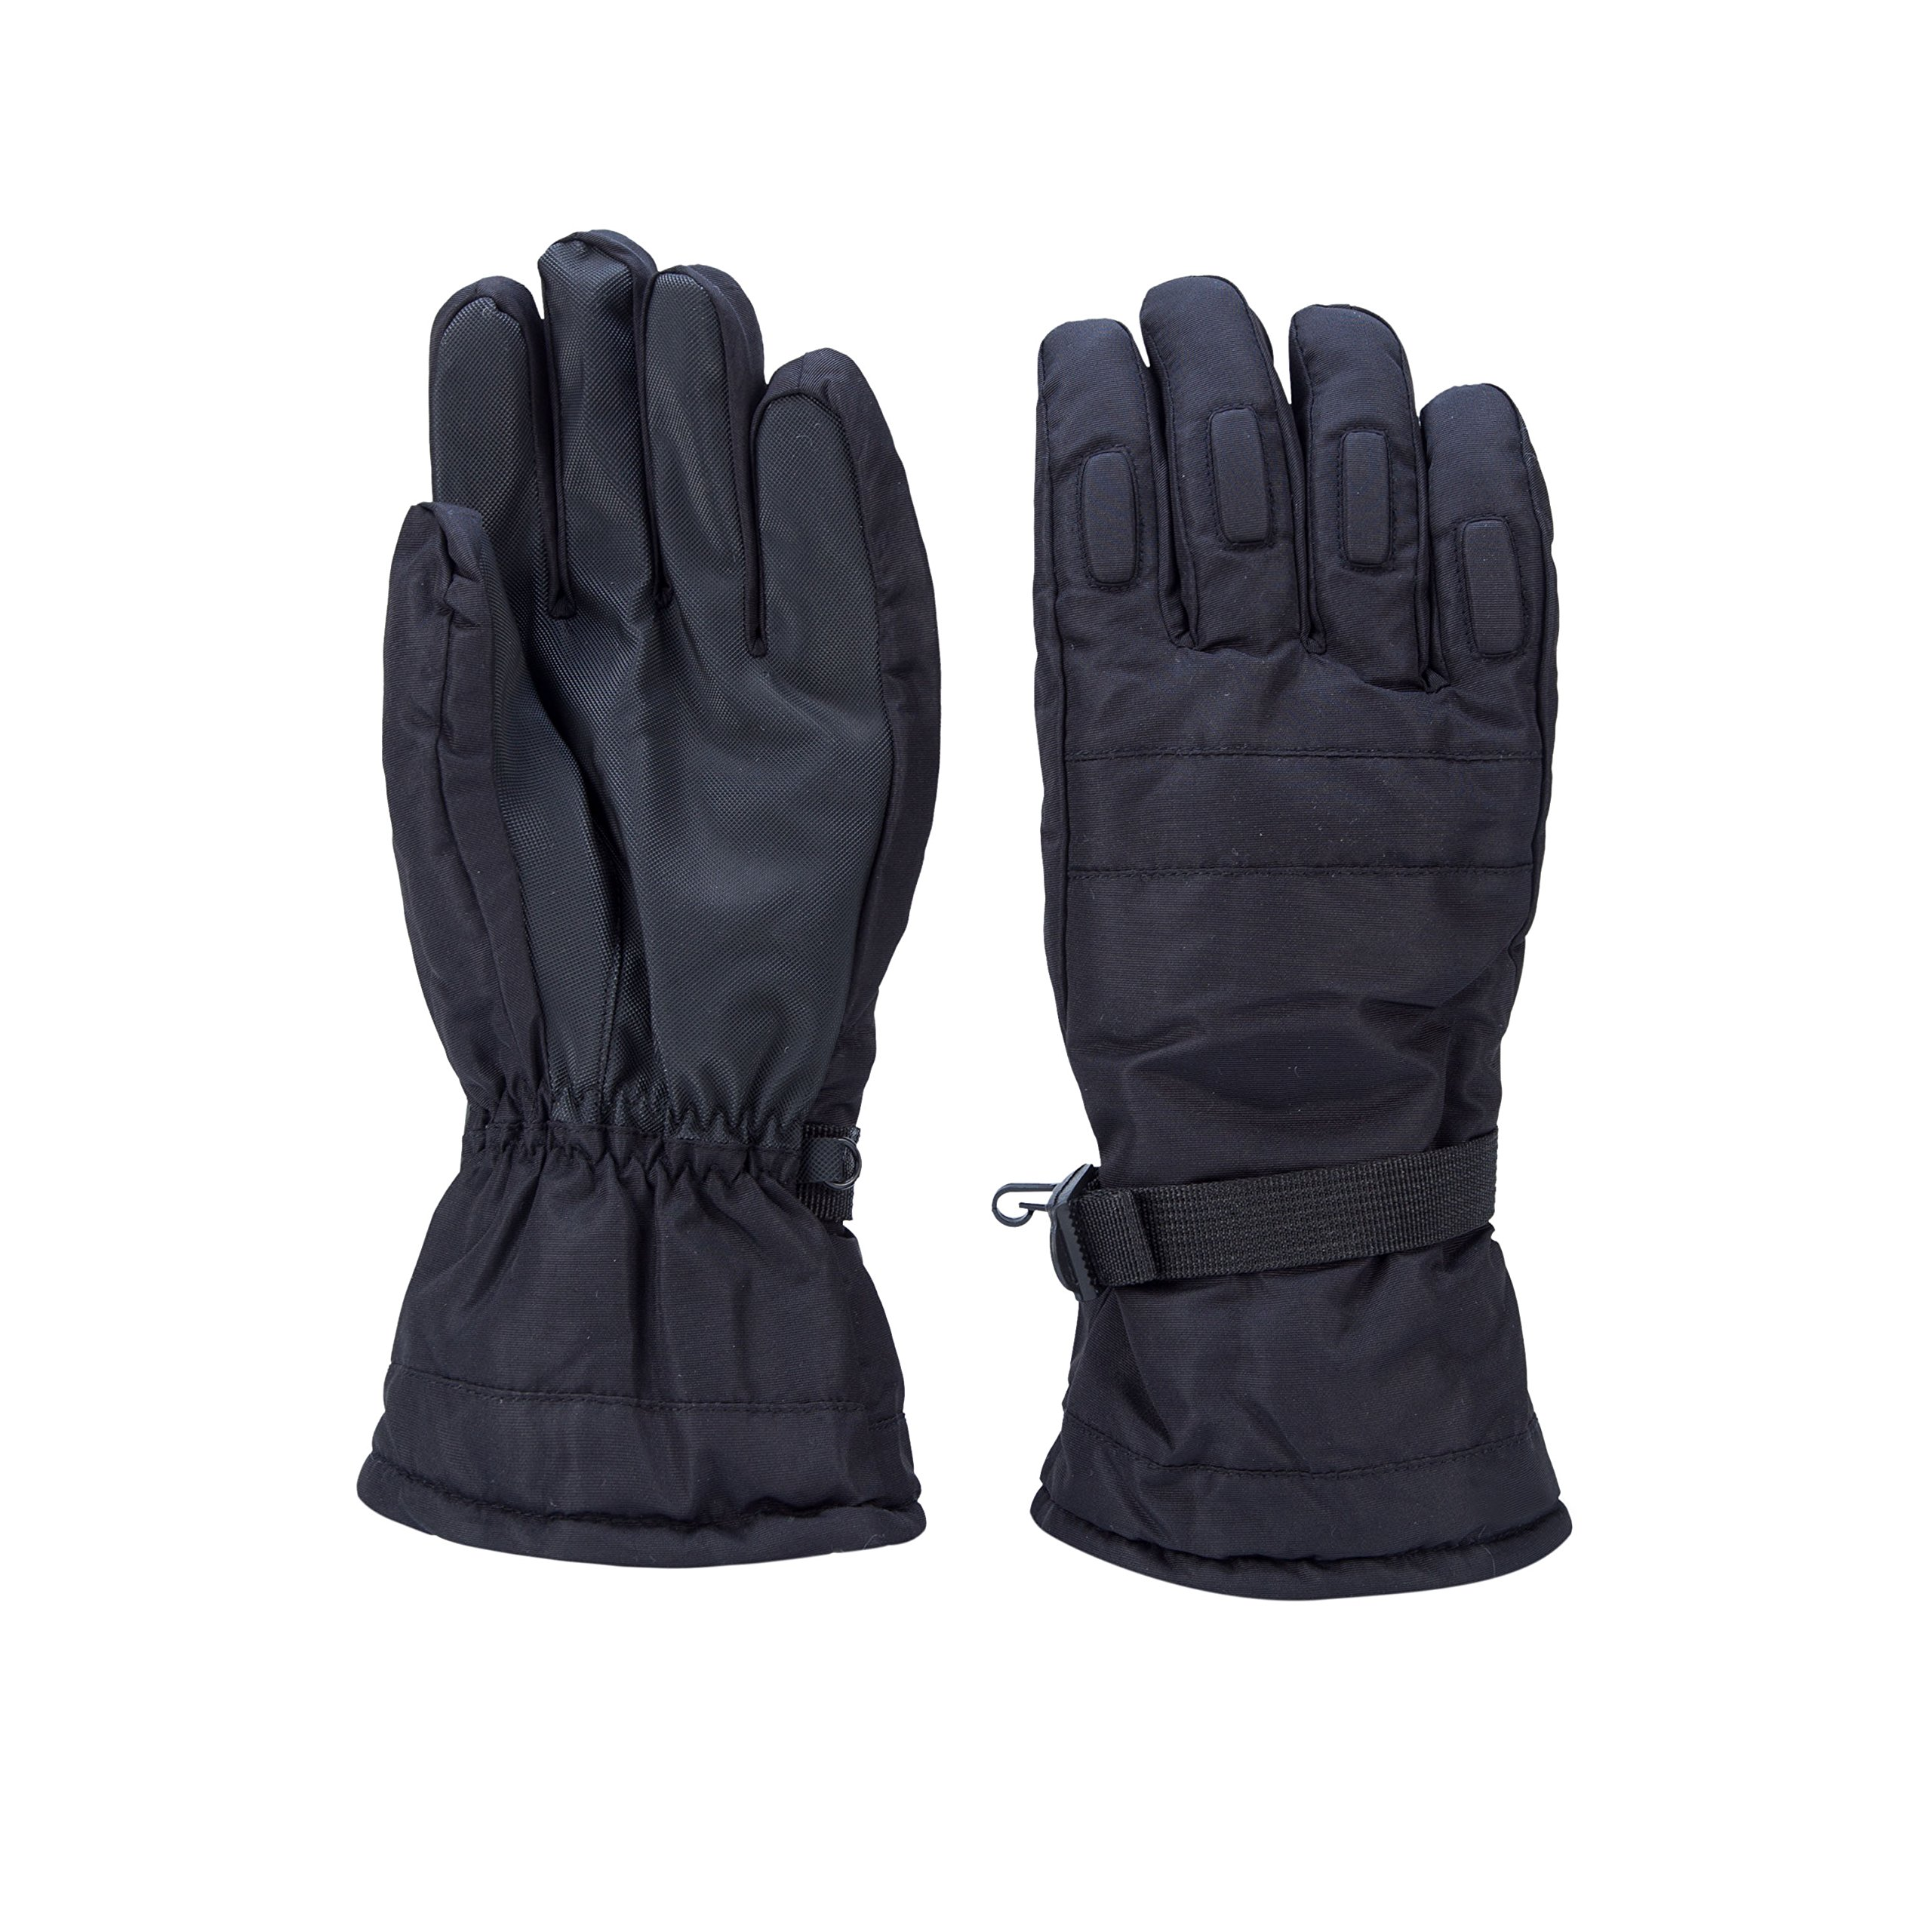 Snowboard Gloves High Grade Winter Warm Ski Gloves Waterproof and Thickened Electric Bicycle Gloves Ski Gloves for Men